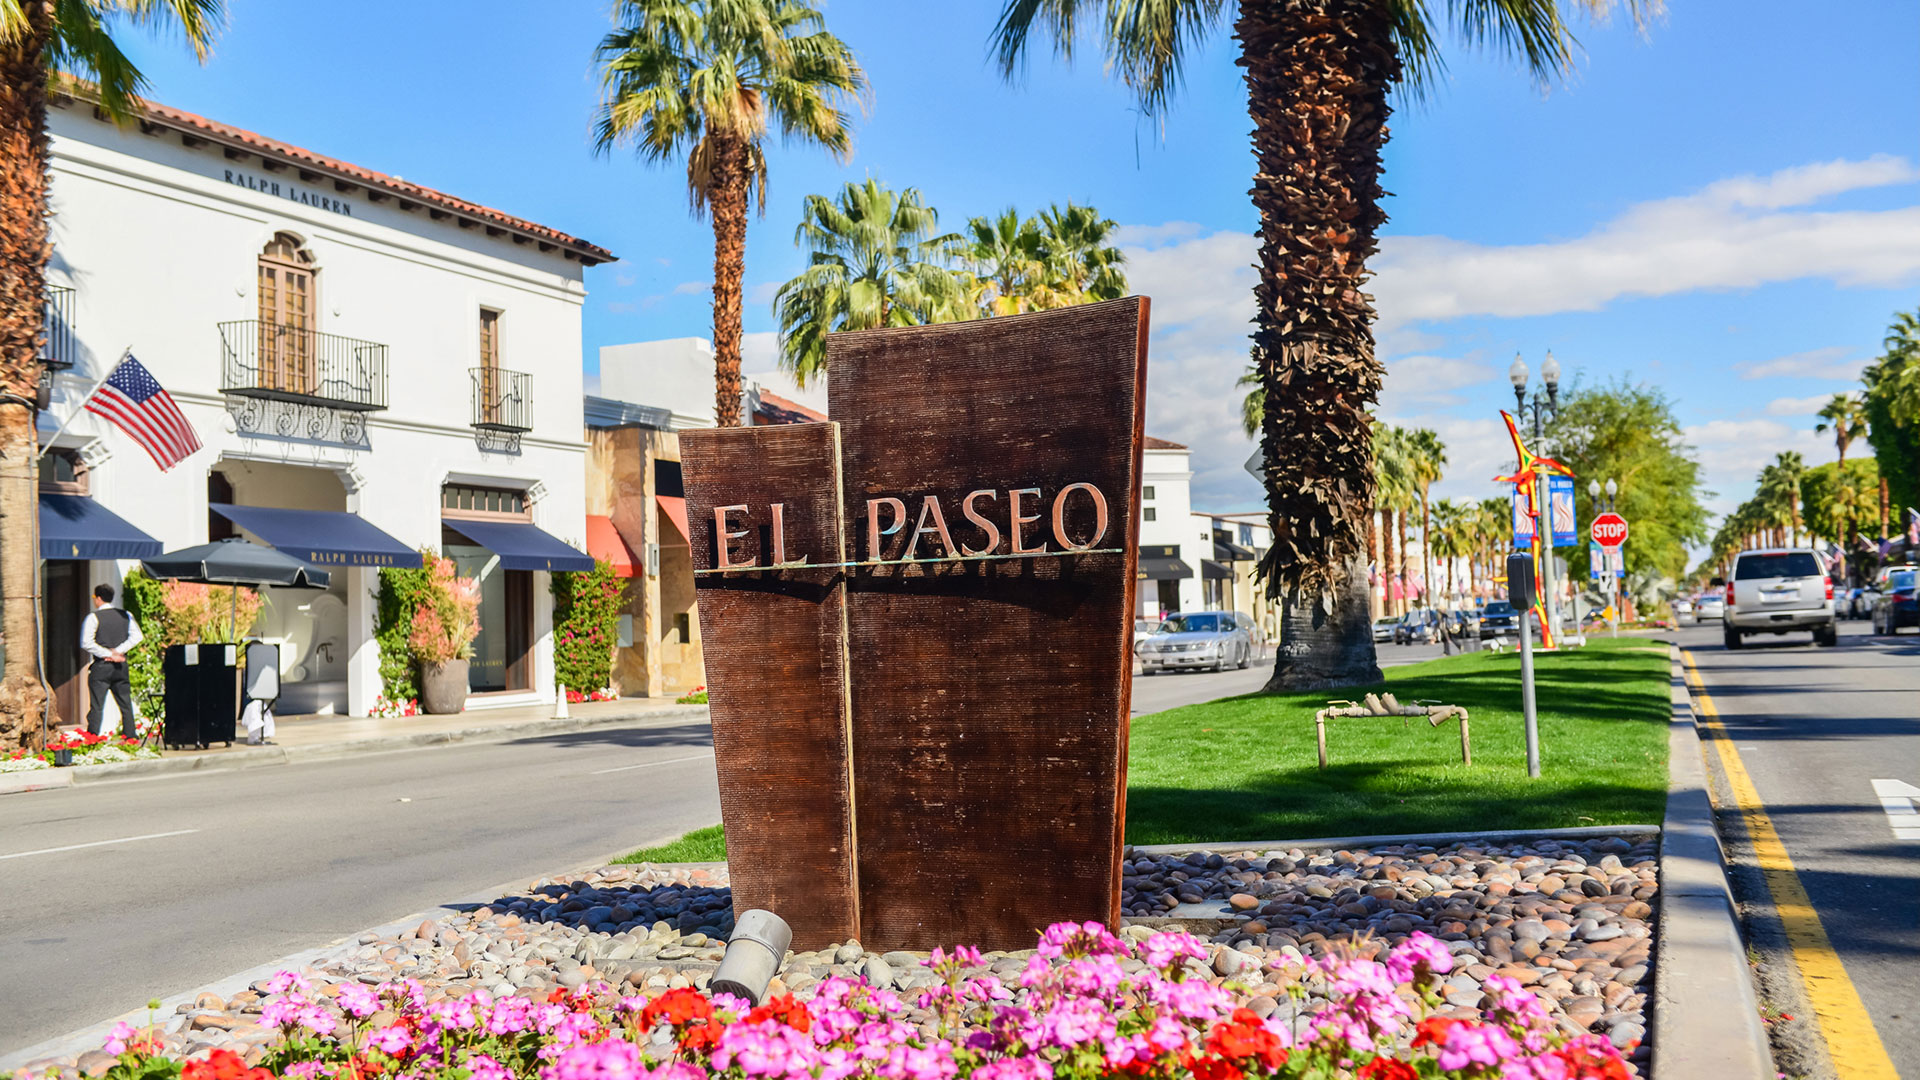 el paseo in palm desert